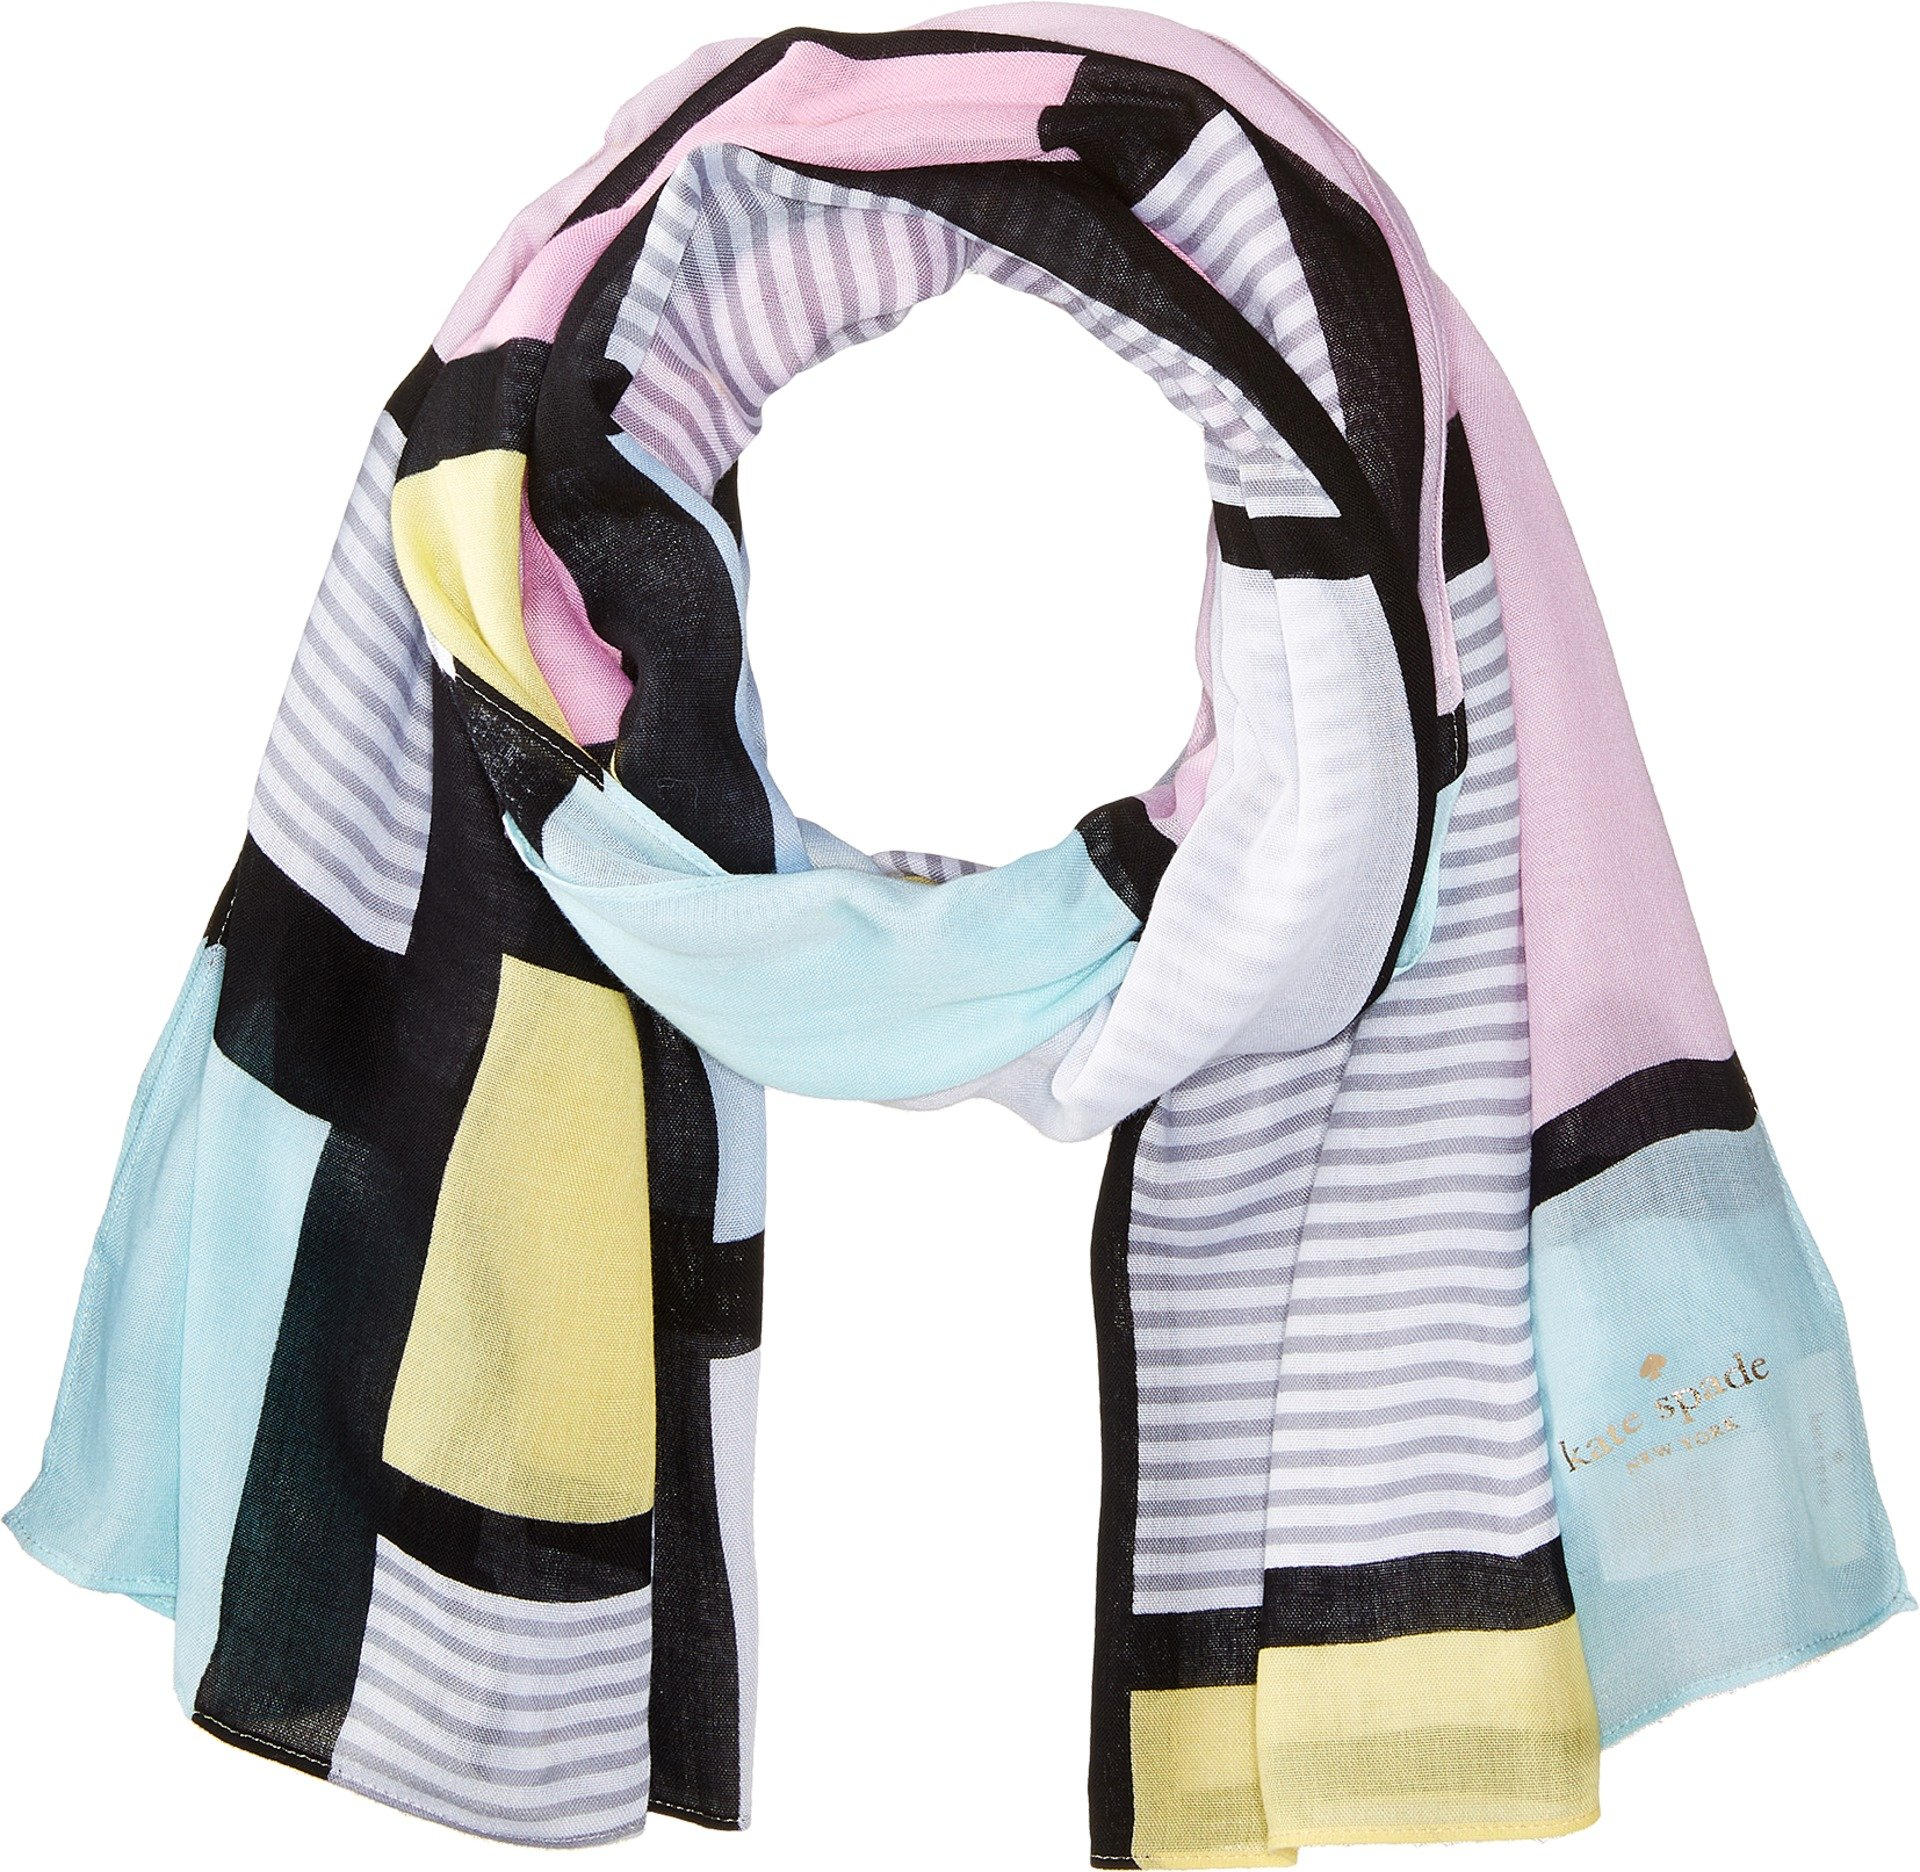 Kate Spade New York Women's Color Block Oblong Scarf Valentine Pink One Size by Kate Spade New York